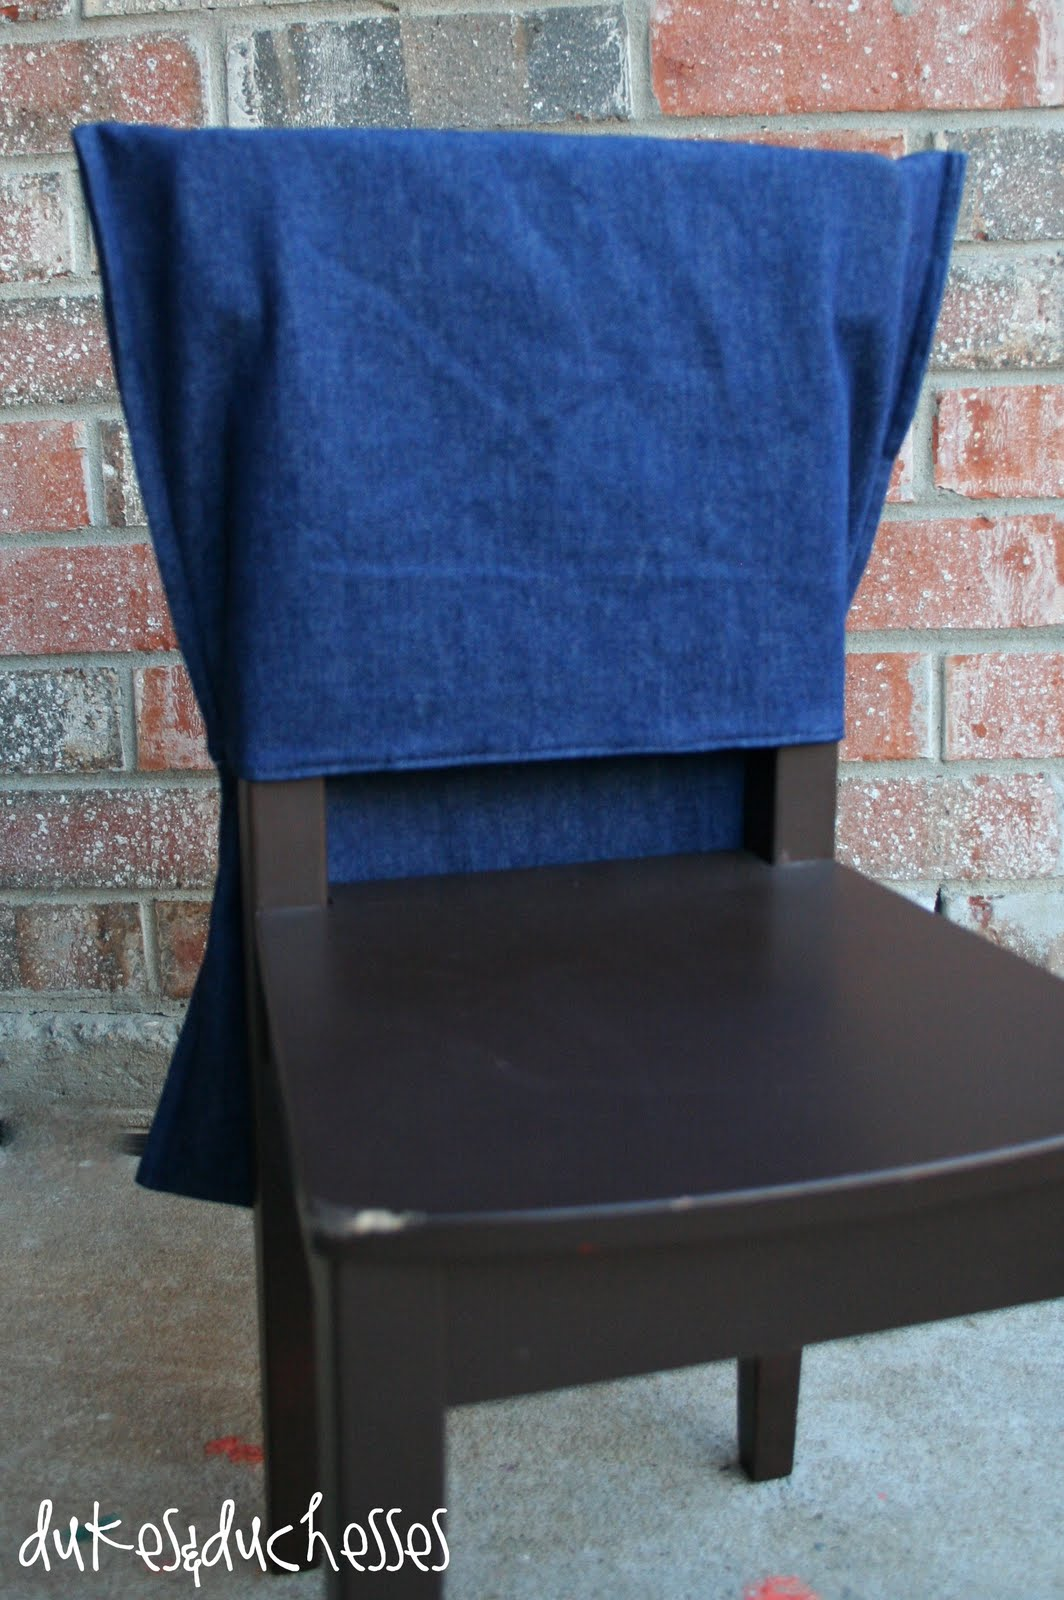 Teacher Chair Chair Pockets For The Classroom Dukes And Duchesses